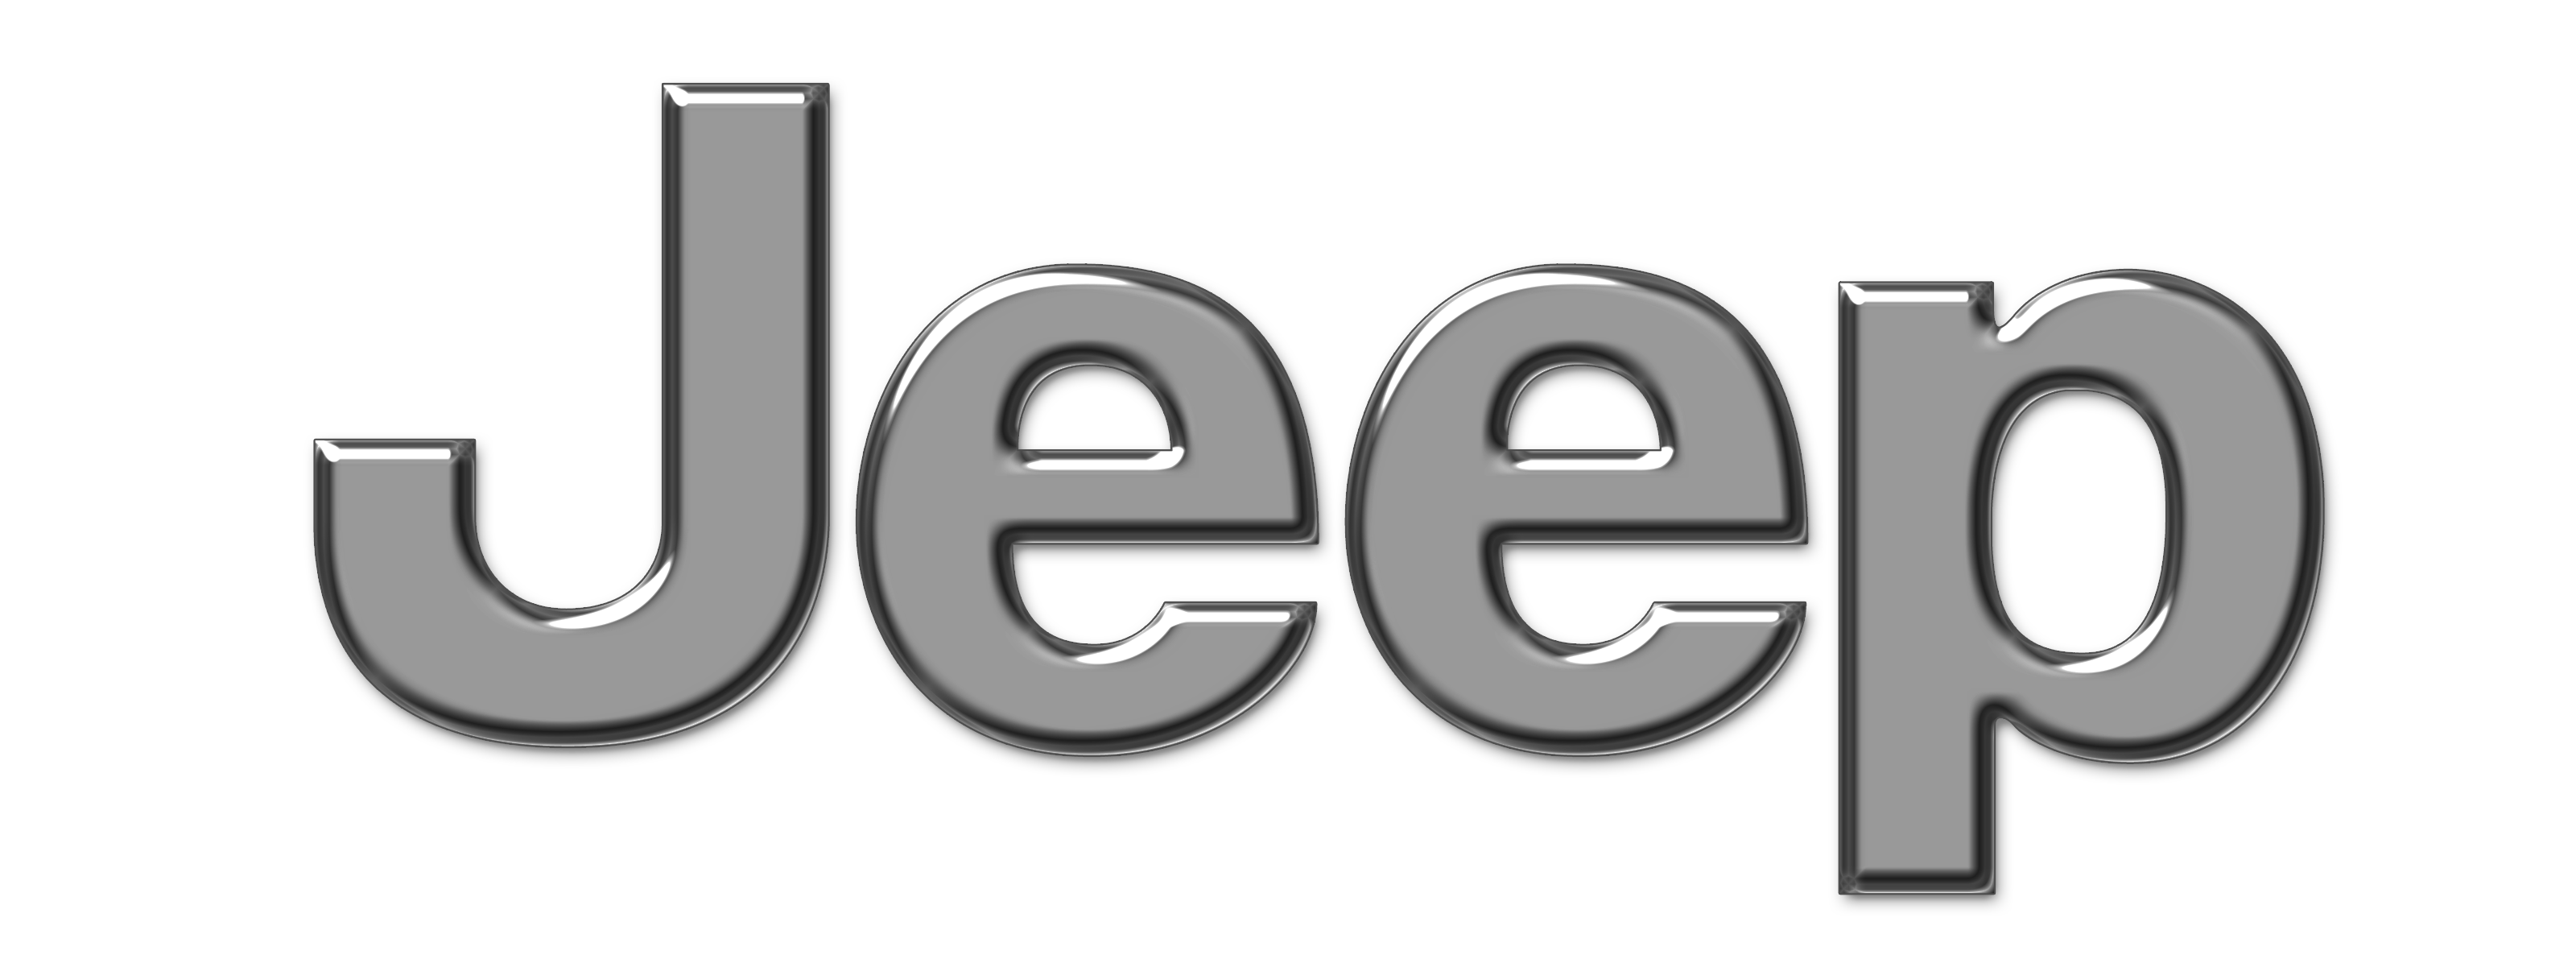 Logo jeep png. Meaning and history latest